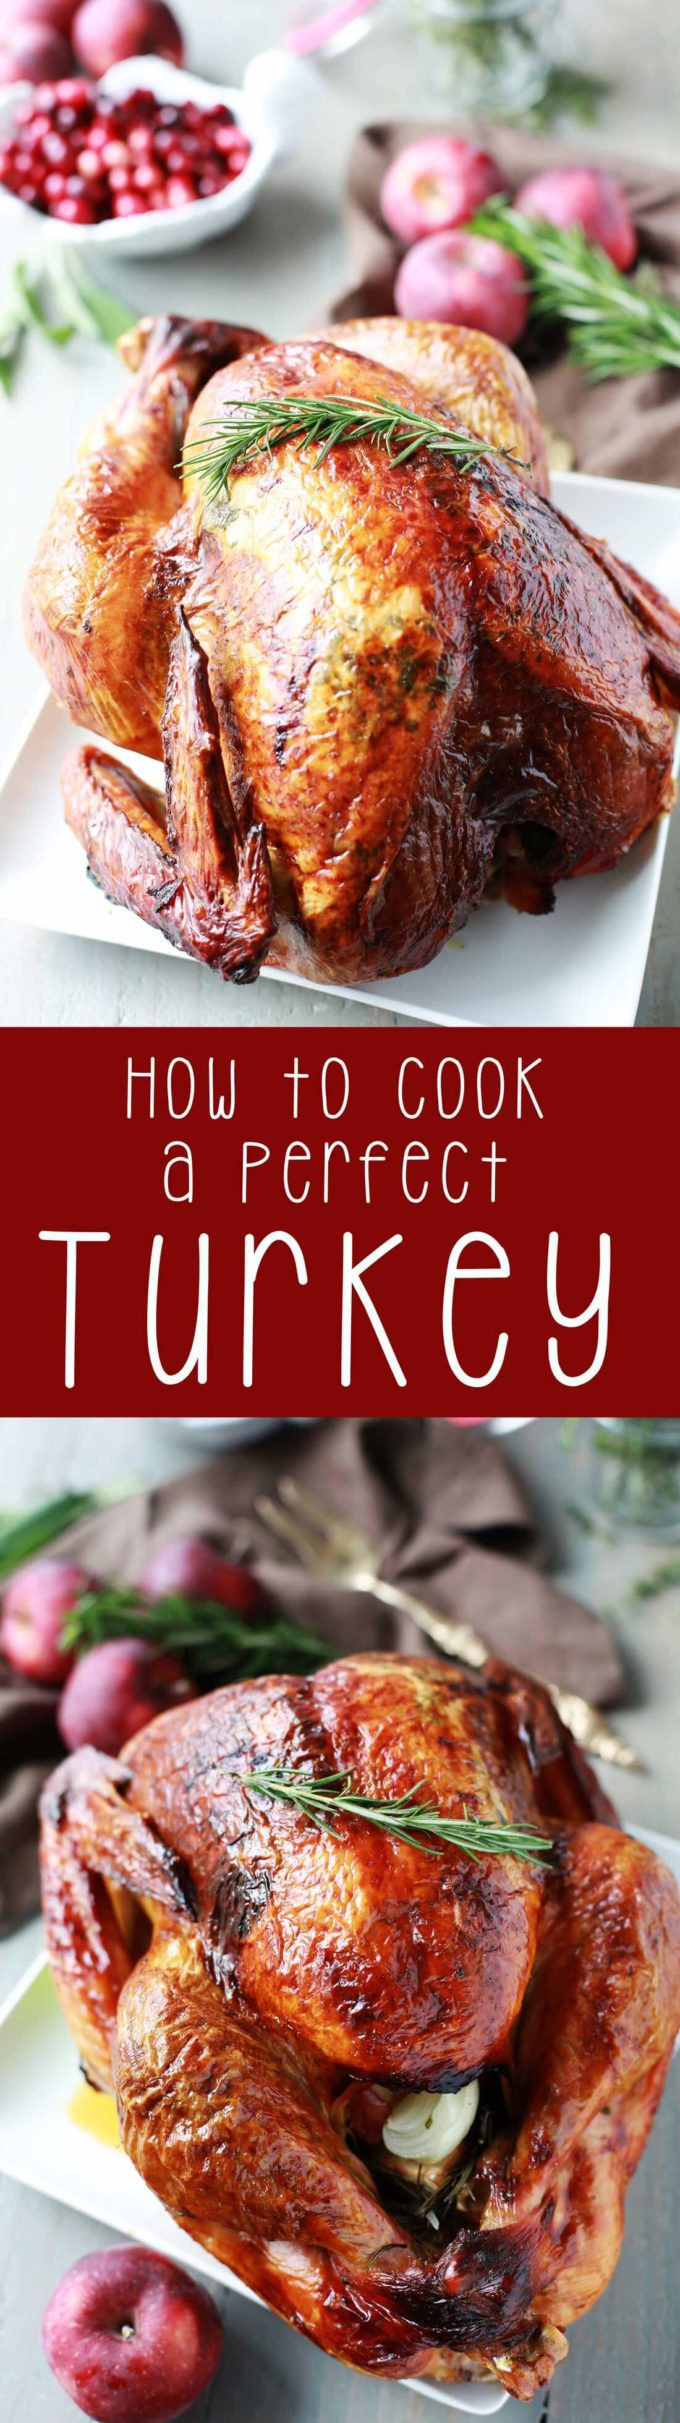 Prepare A Turkey For Thanksgiving  How to Cook a Perfect Turkey Eazy Peazy Mealz